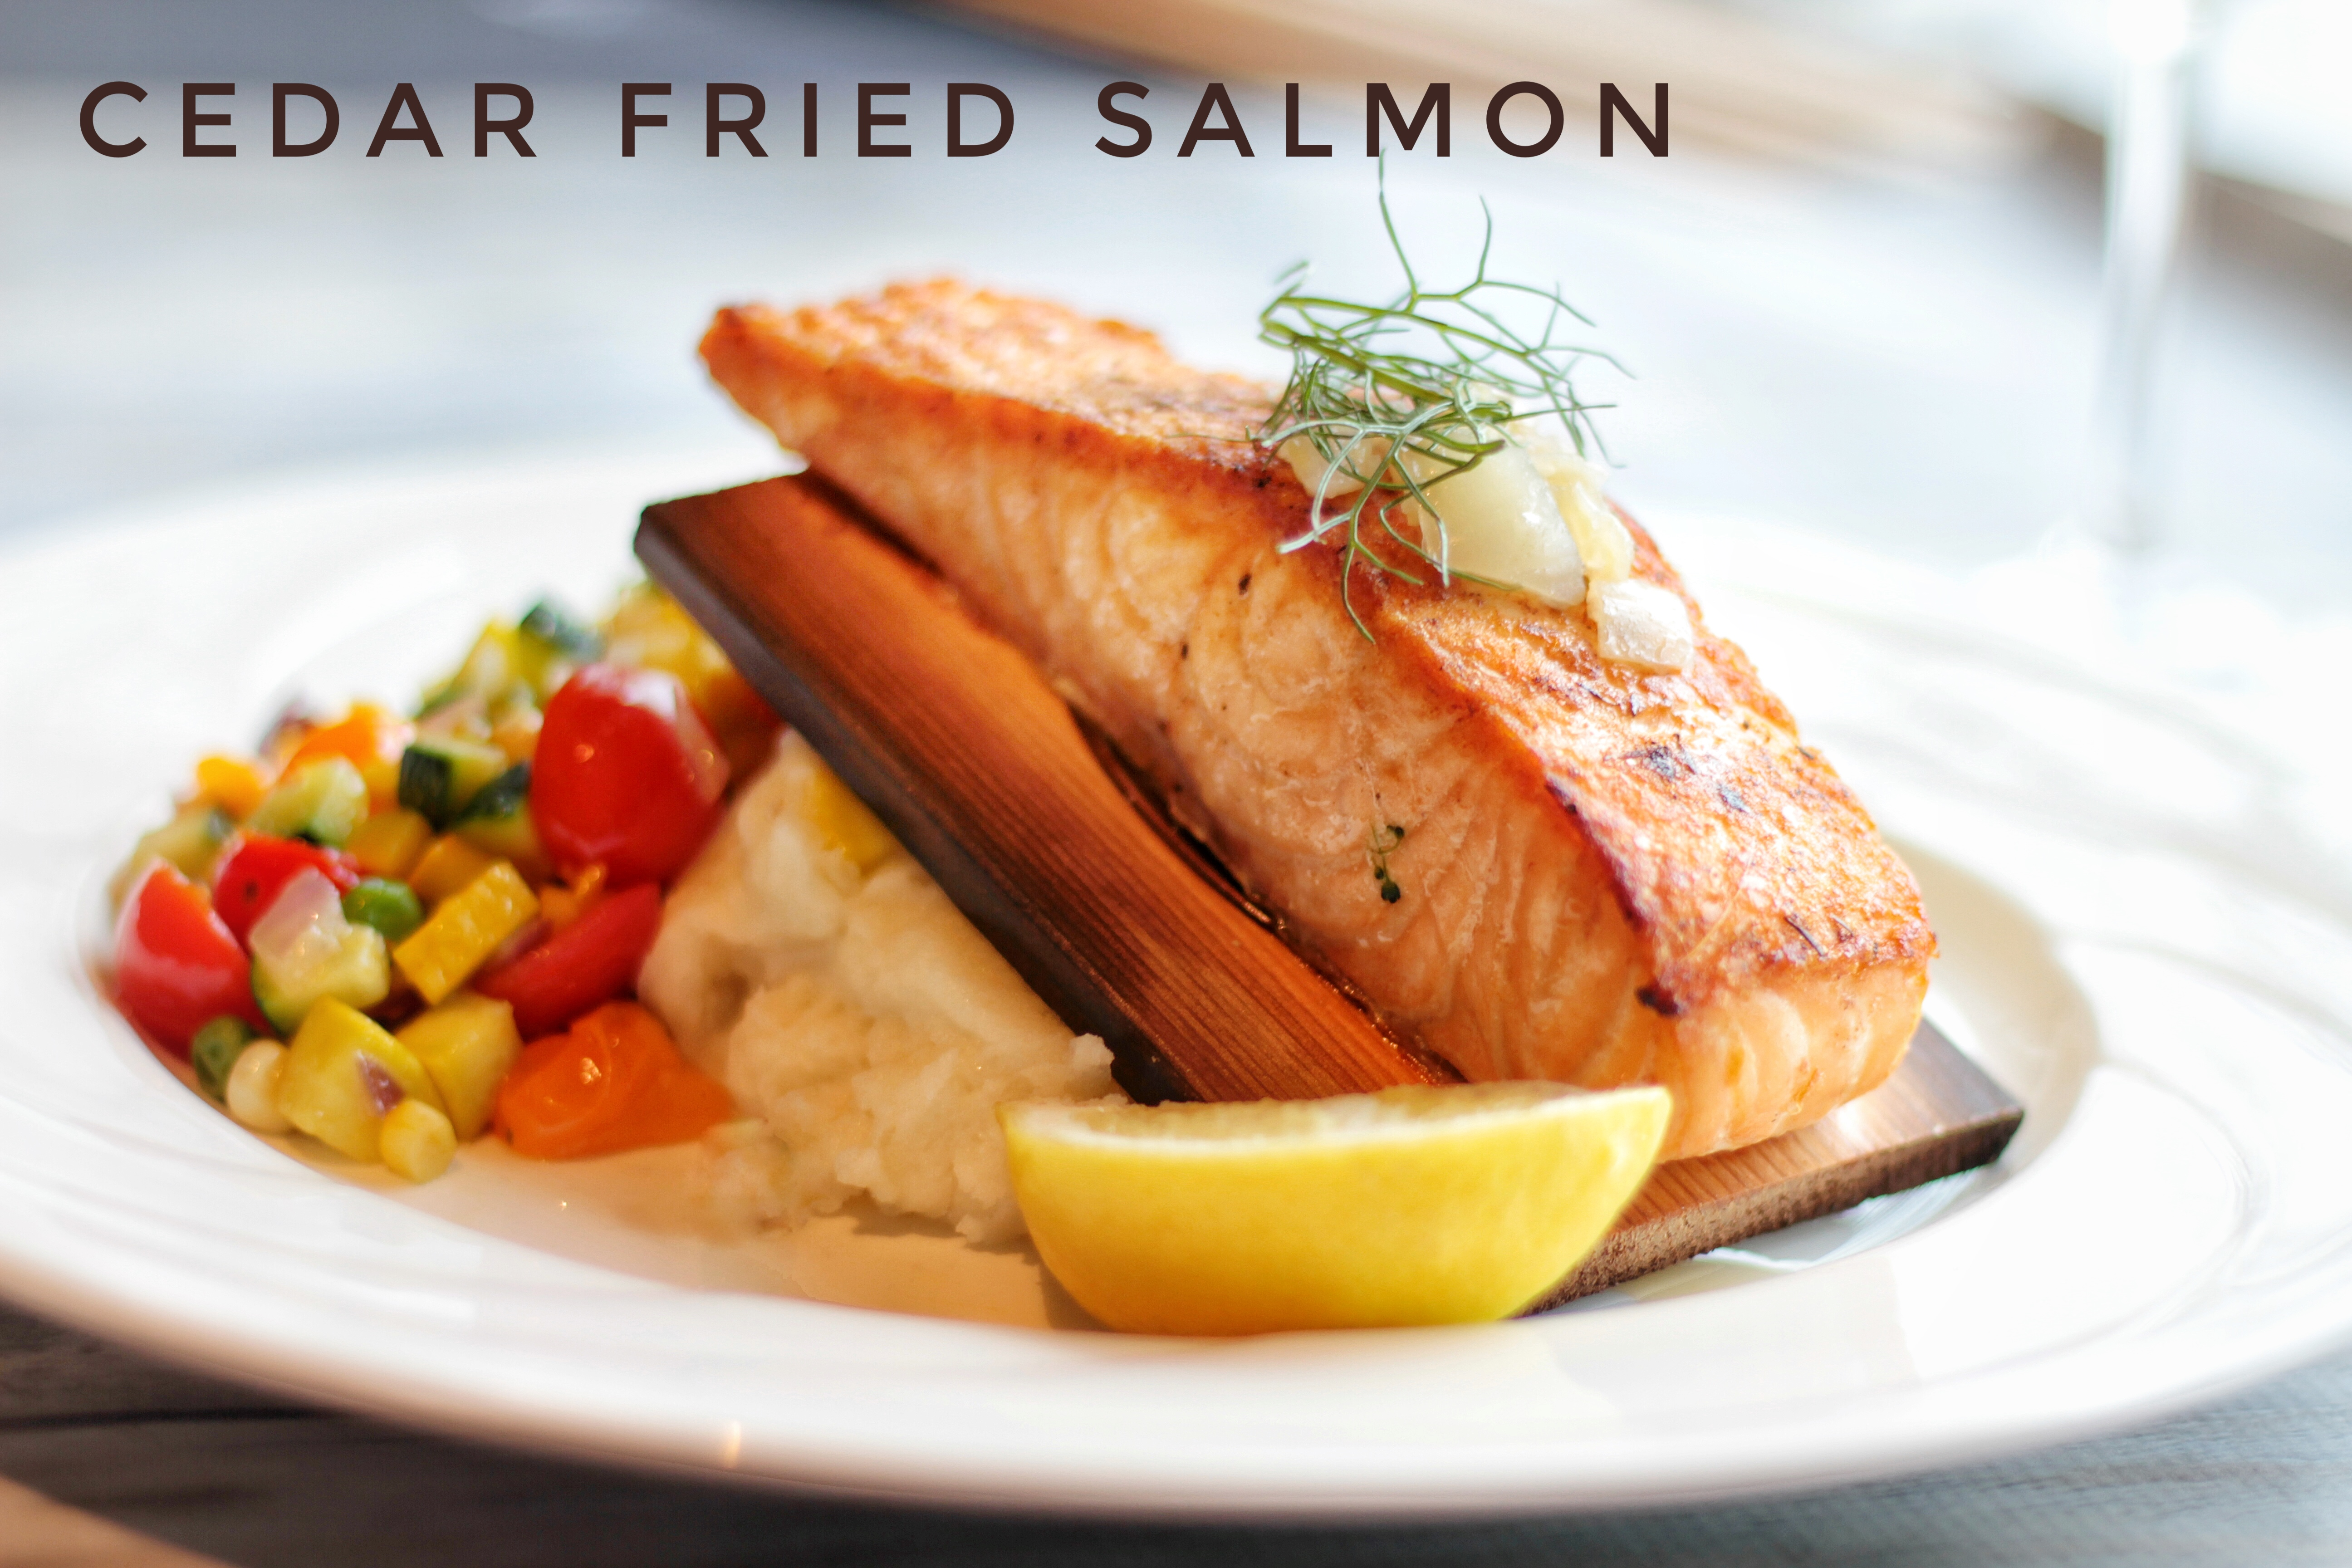 Salmon with text